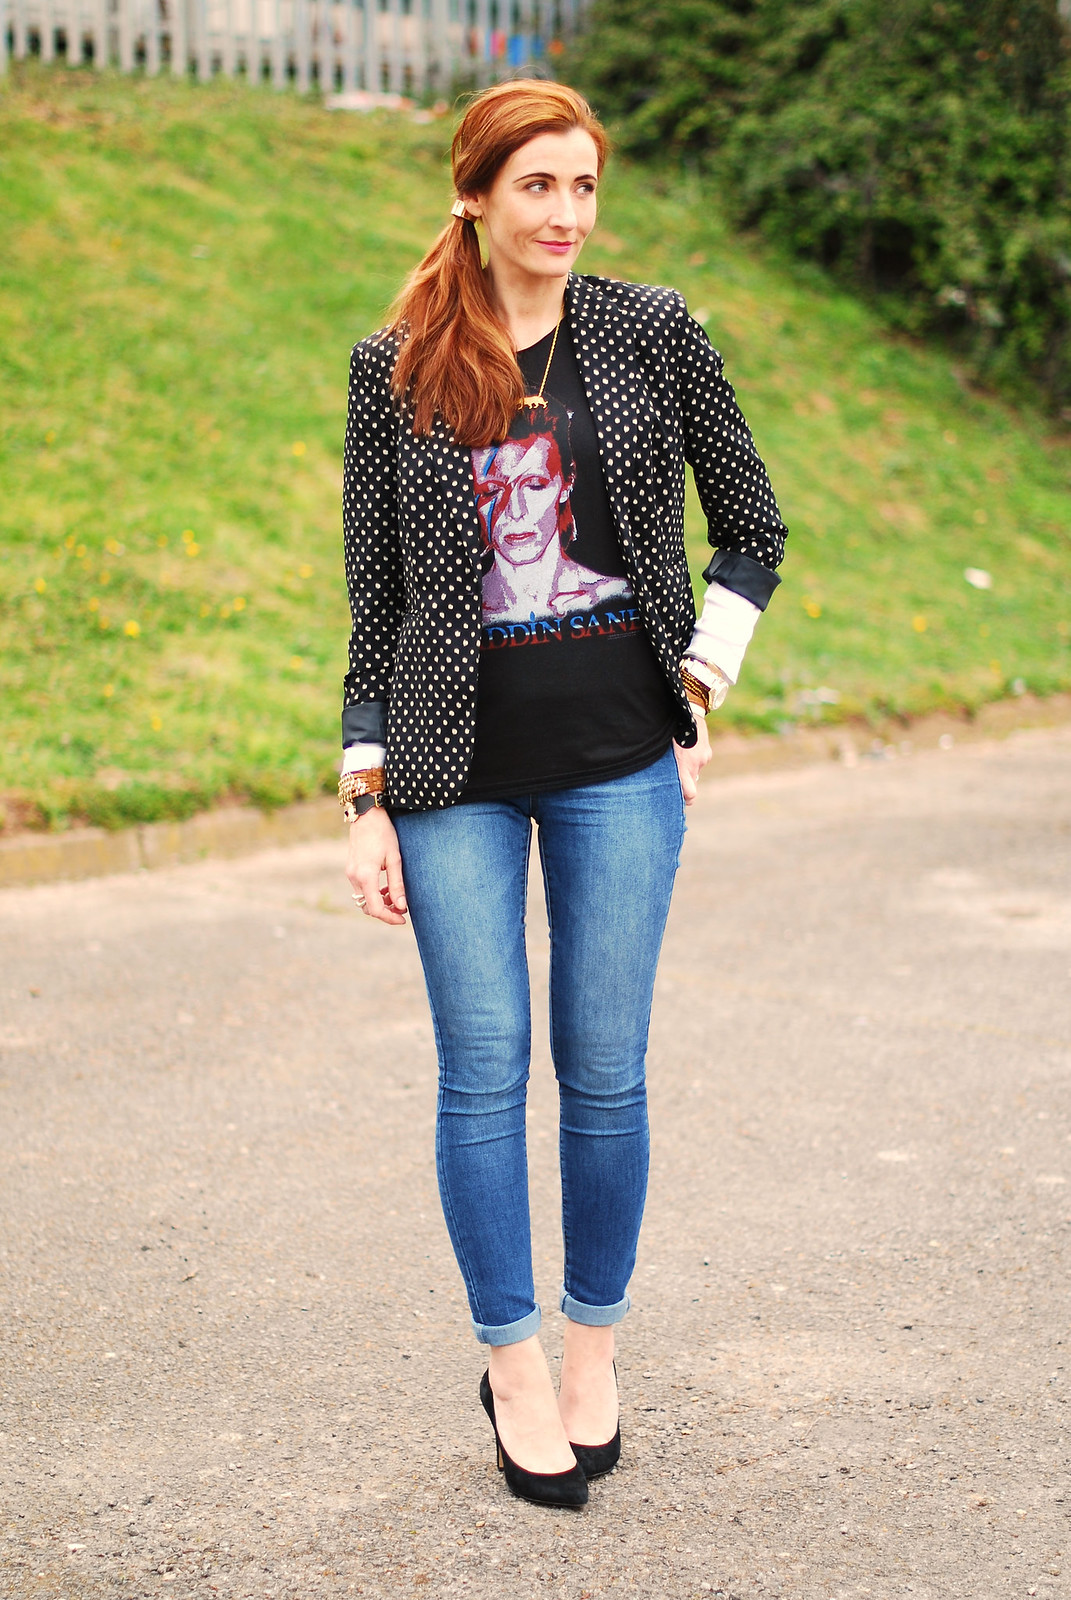 4 Ways to Wear a David Bowie t-shirt | With a polka dot blazer and skinnies